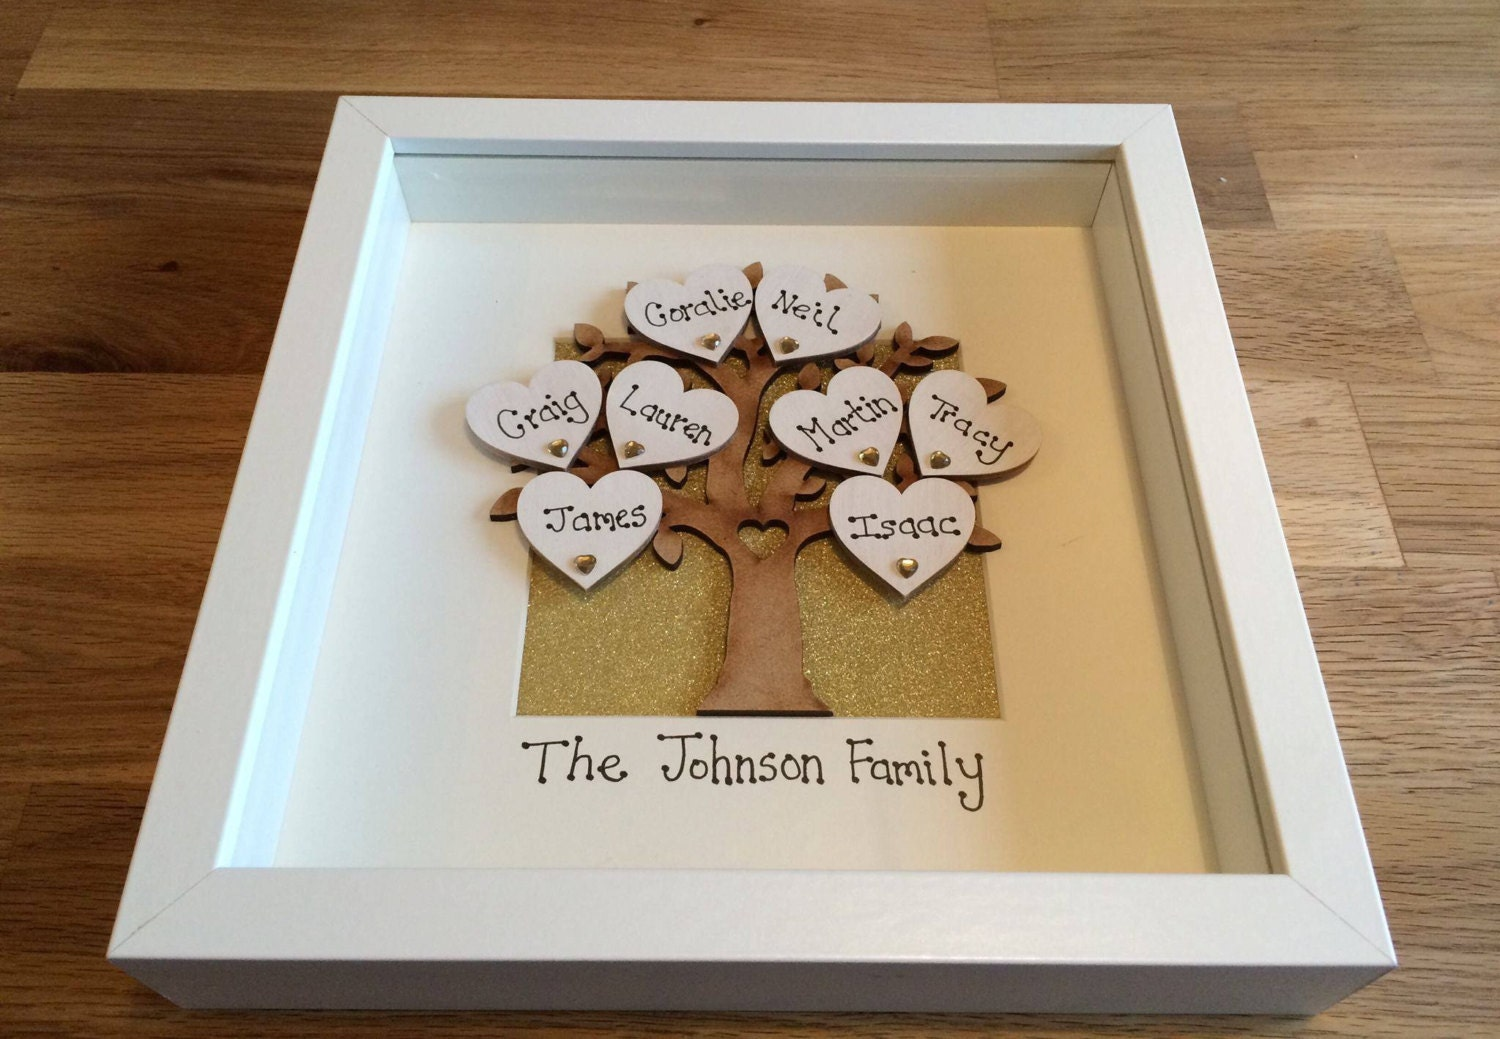 personalised wooden family tree frame box frame family tree gift gift for mum mom mothers day gift personalized family tree frame